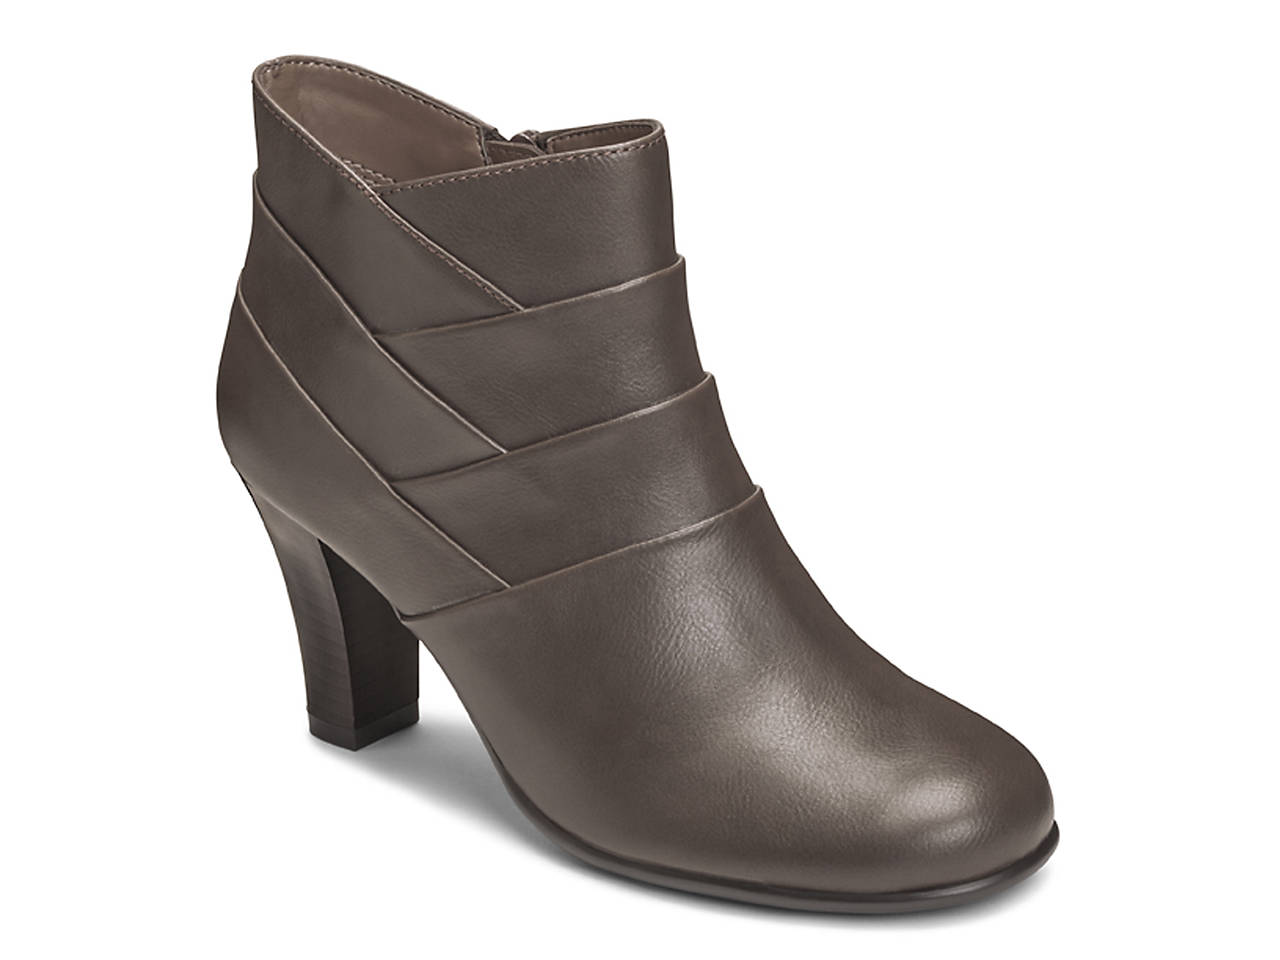 A2 by Aerosoles Best Role Boot ACU6P